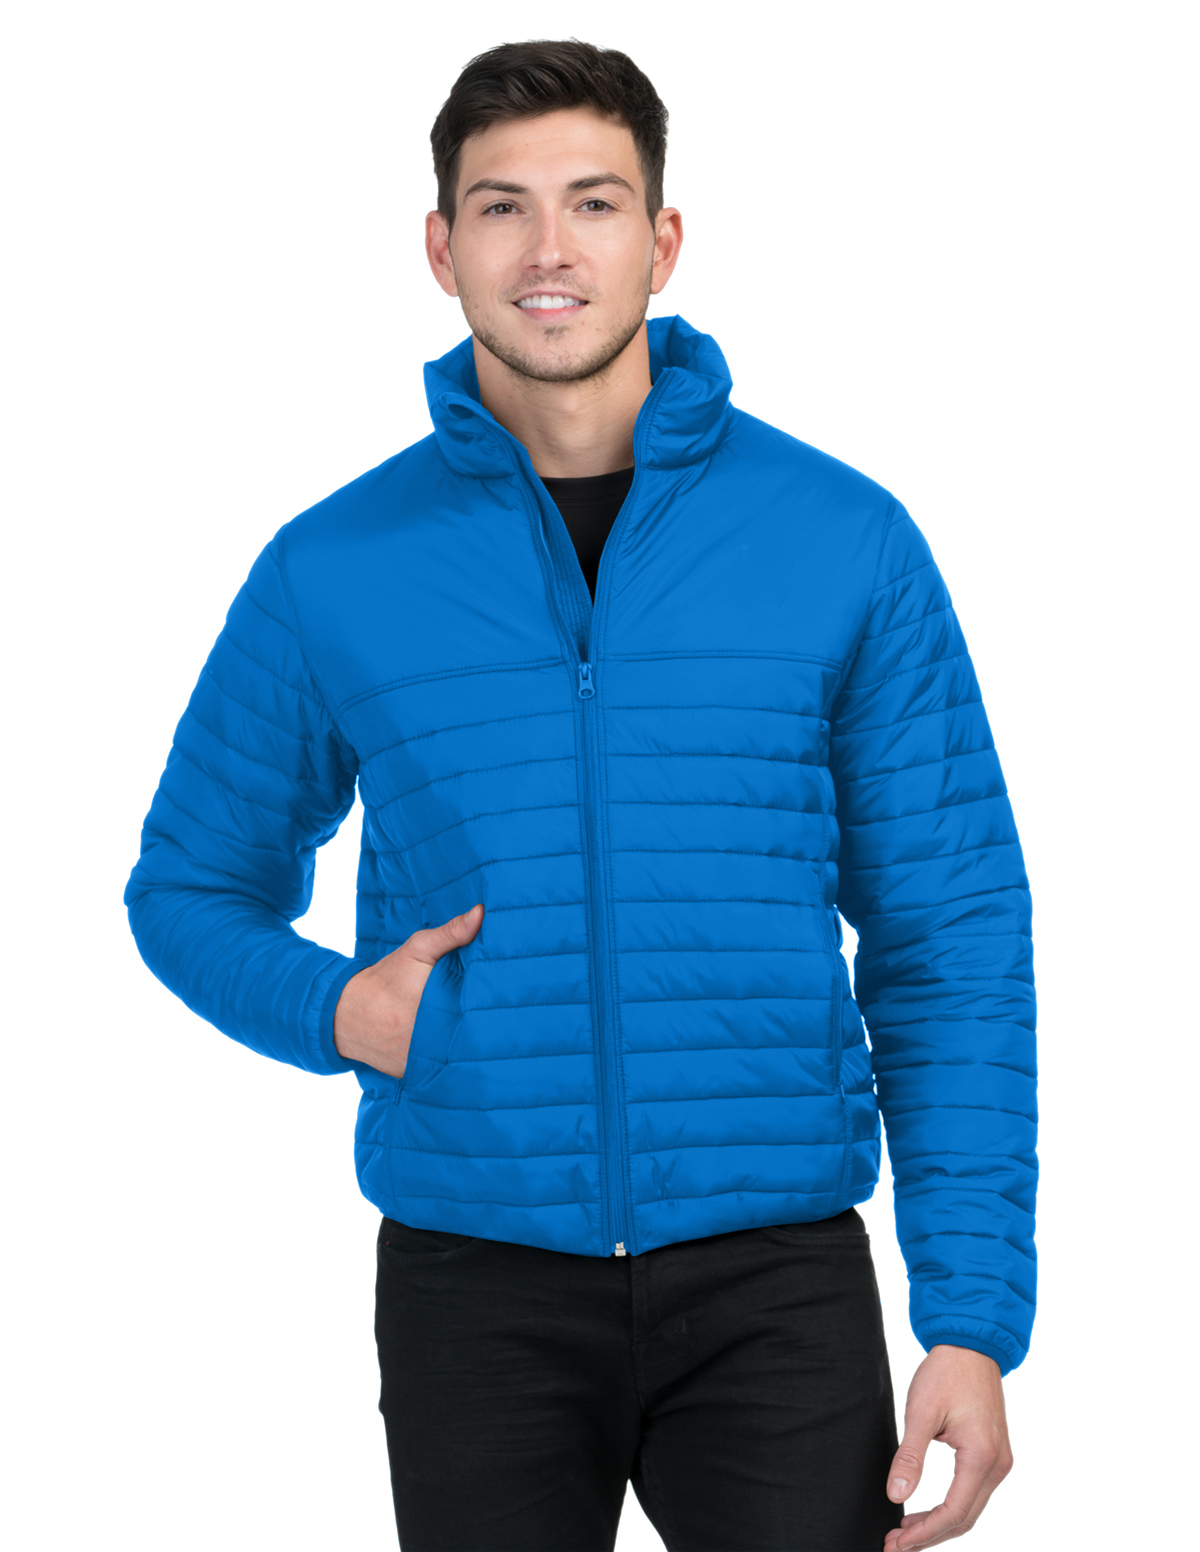 Tri-Mountain J8260 - Canby  Men's Quilted Puffer Jacket